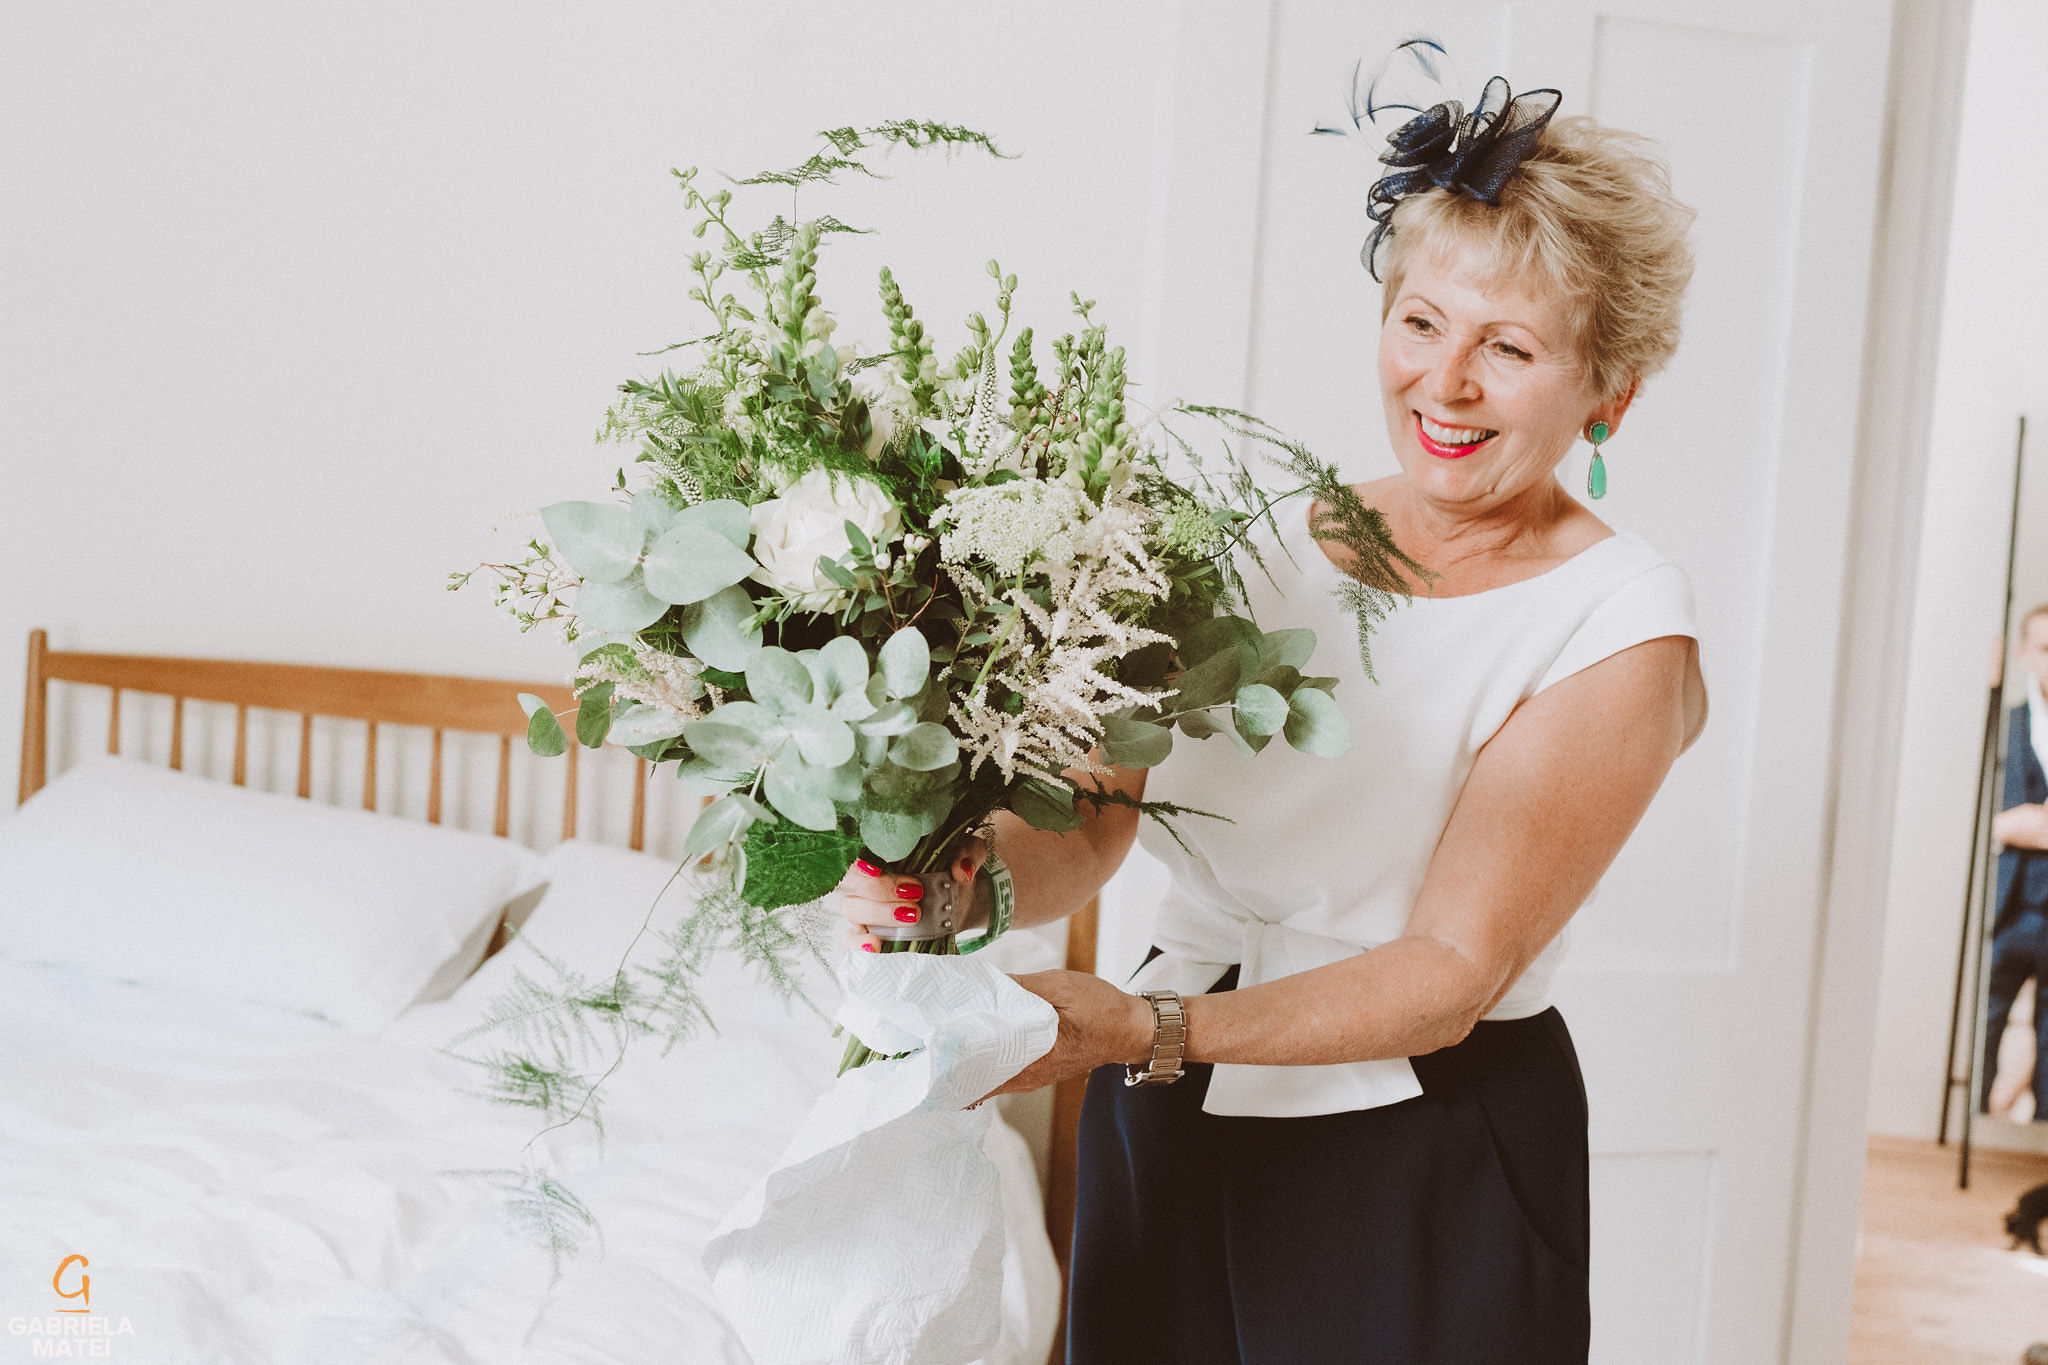 Mother of the bride presenting the wedding bouquet at South Stoke Barn wedding venue in Arundel